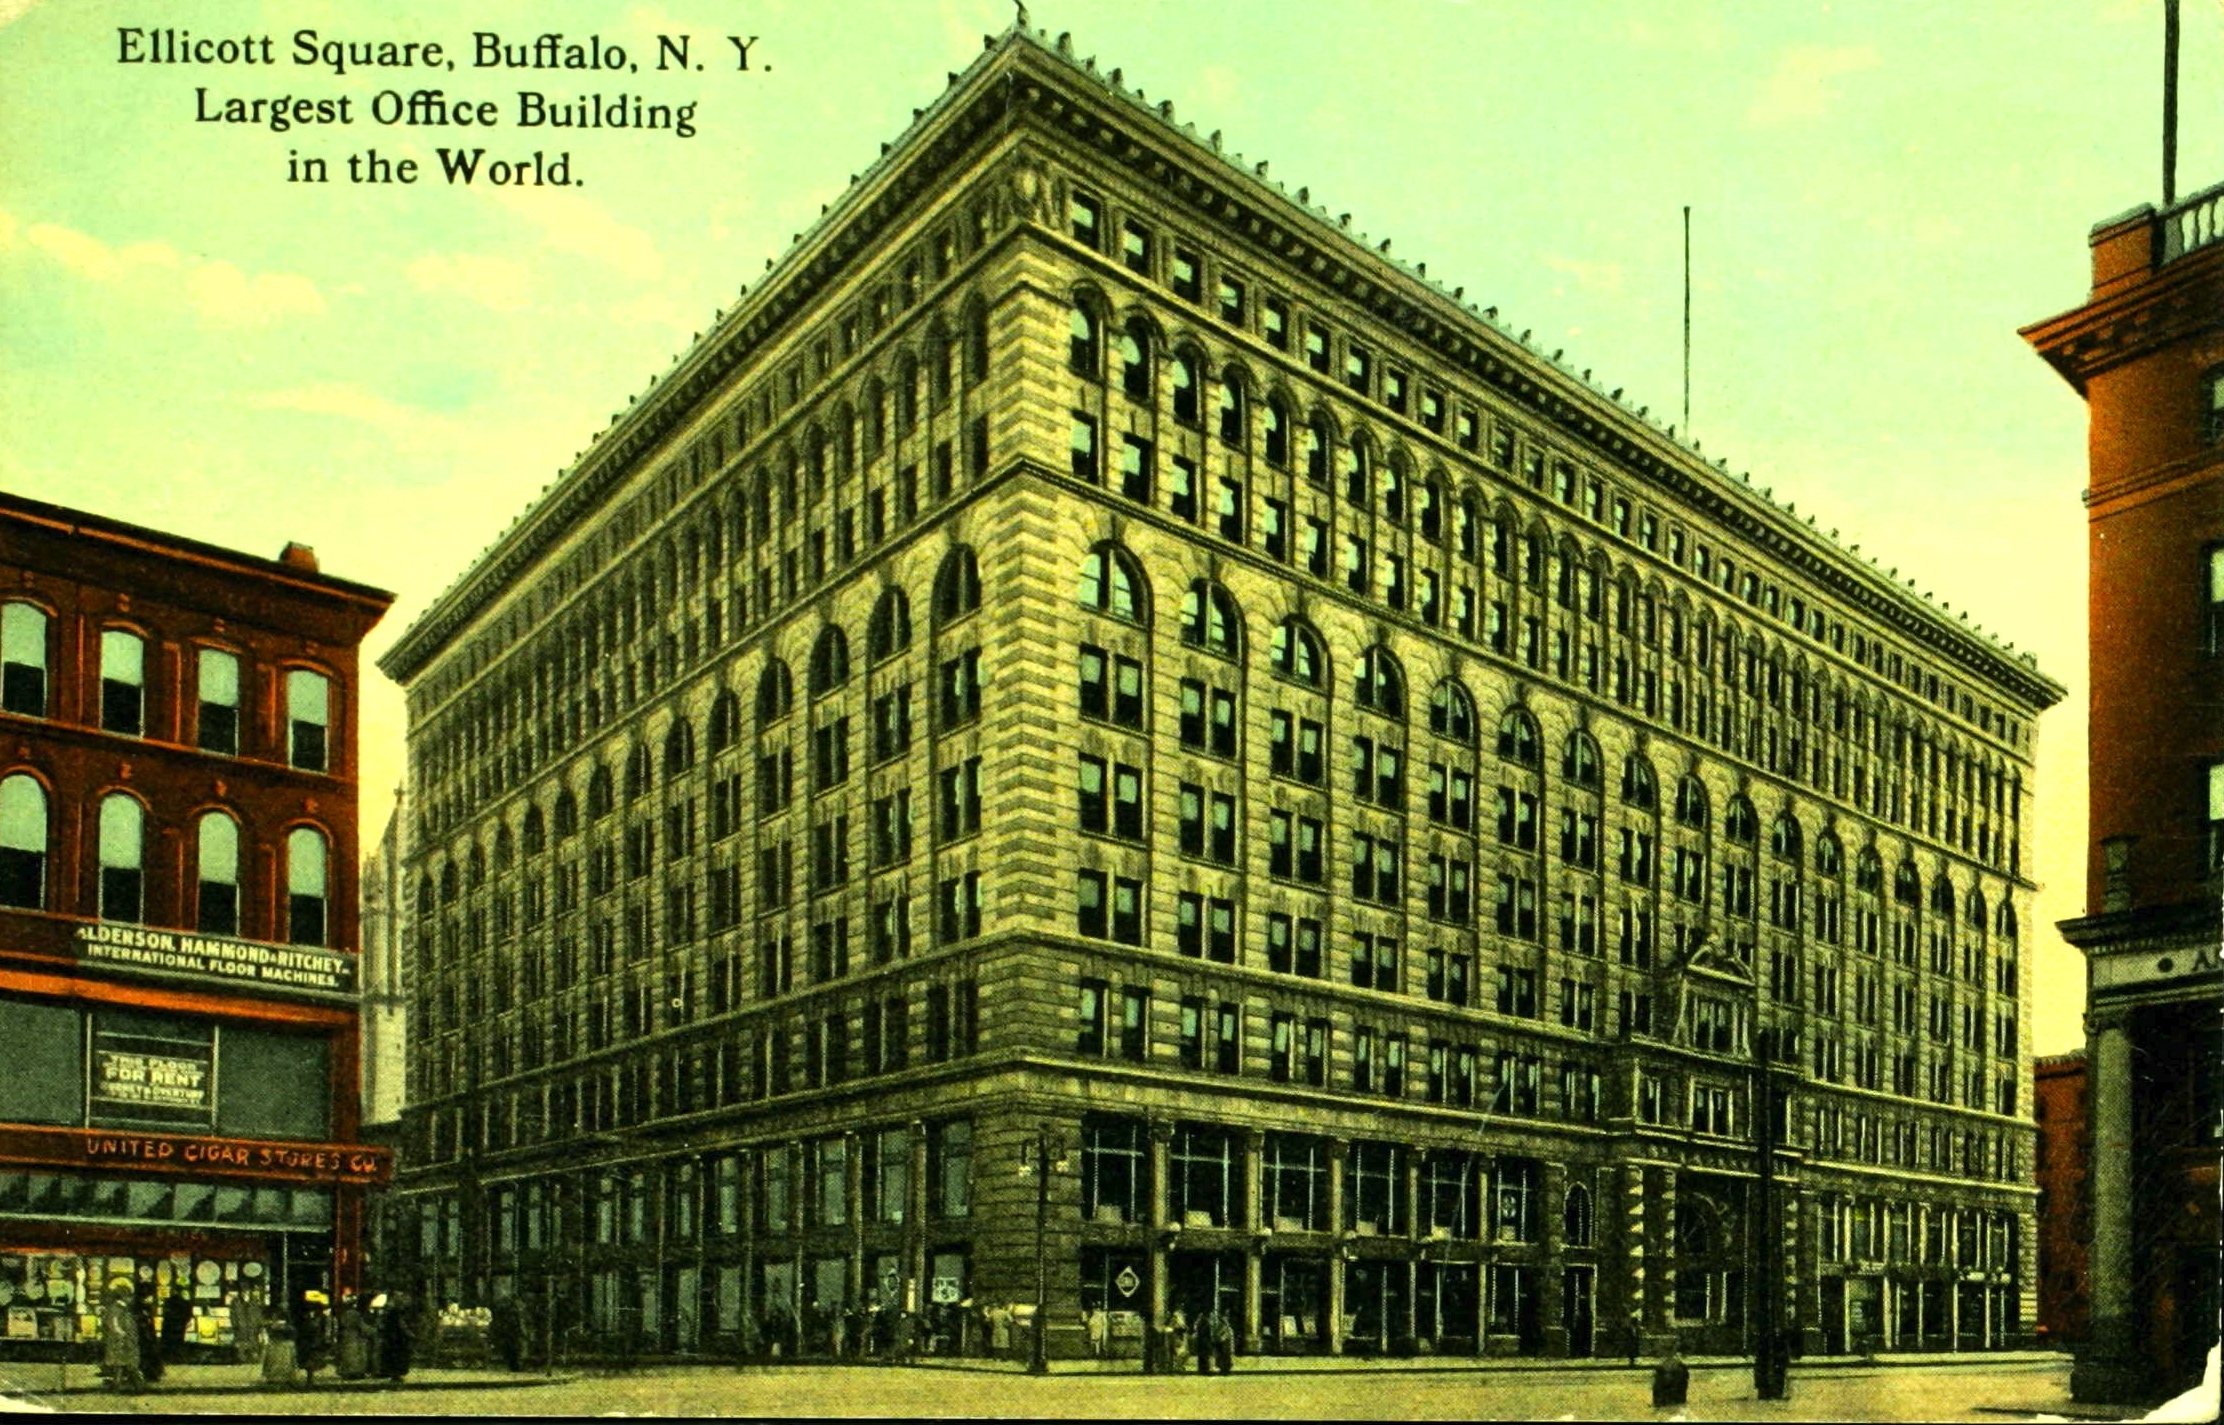 <i>Ellicott Square, Buffalo, N.Y. Largest Office Building in the World</i>